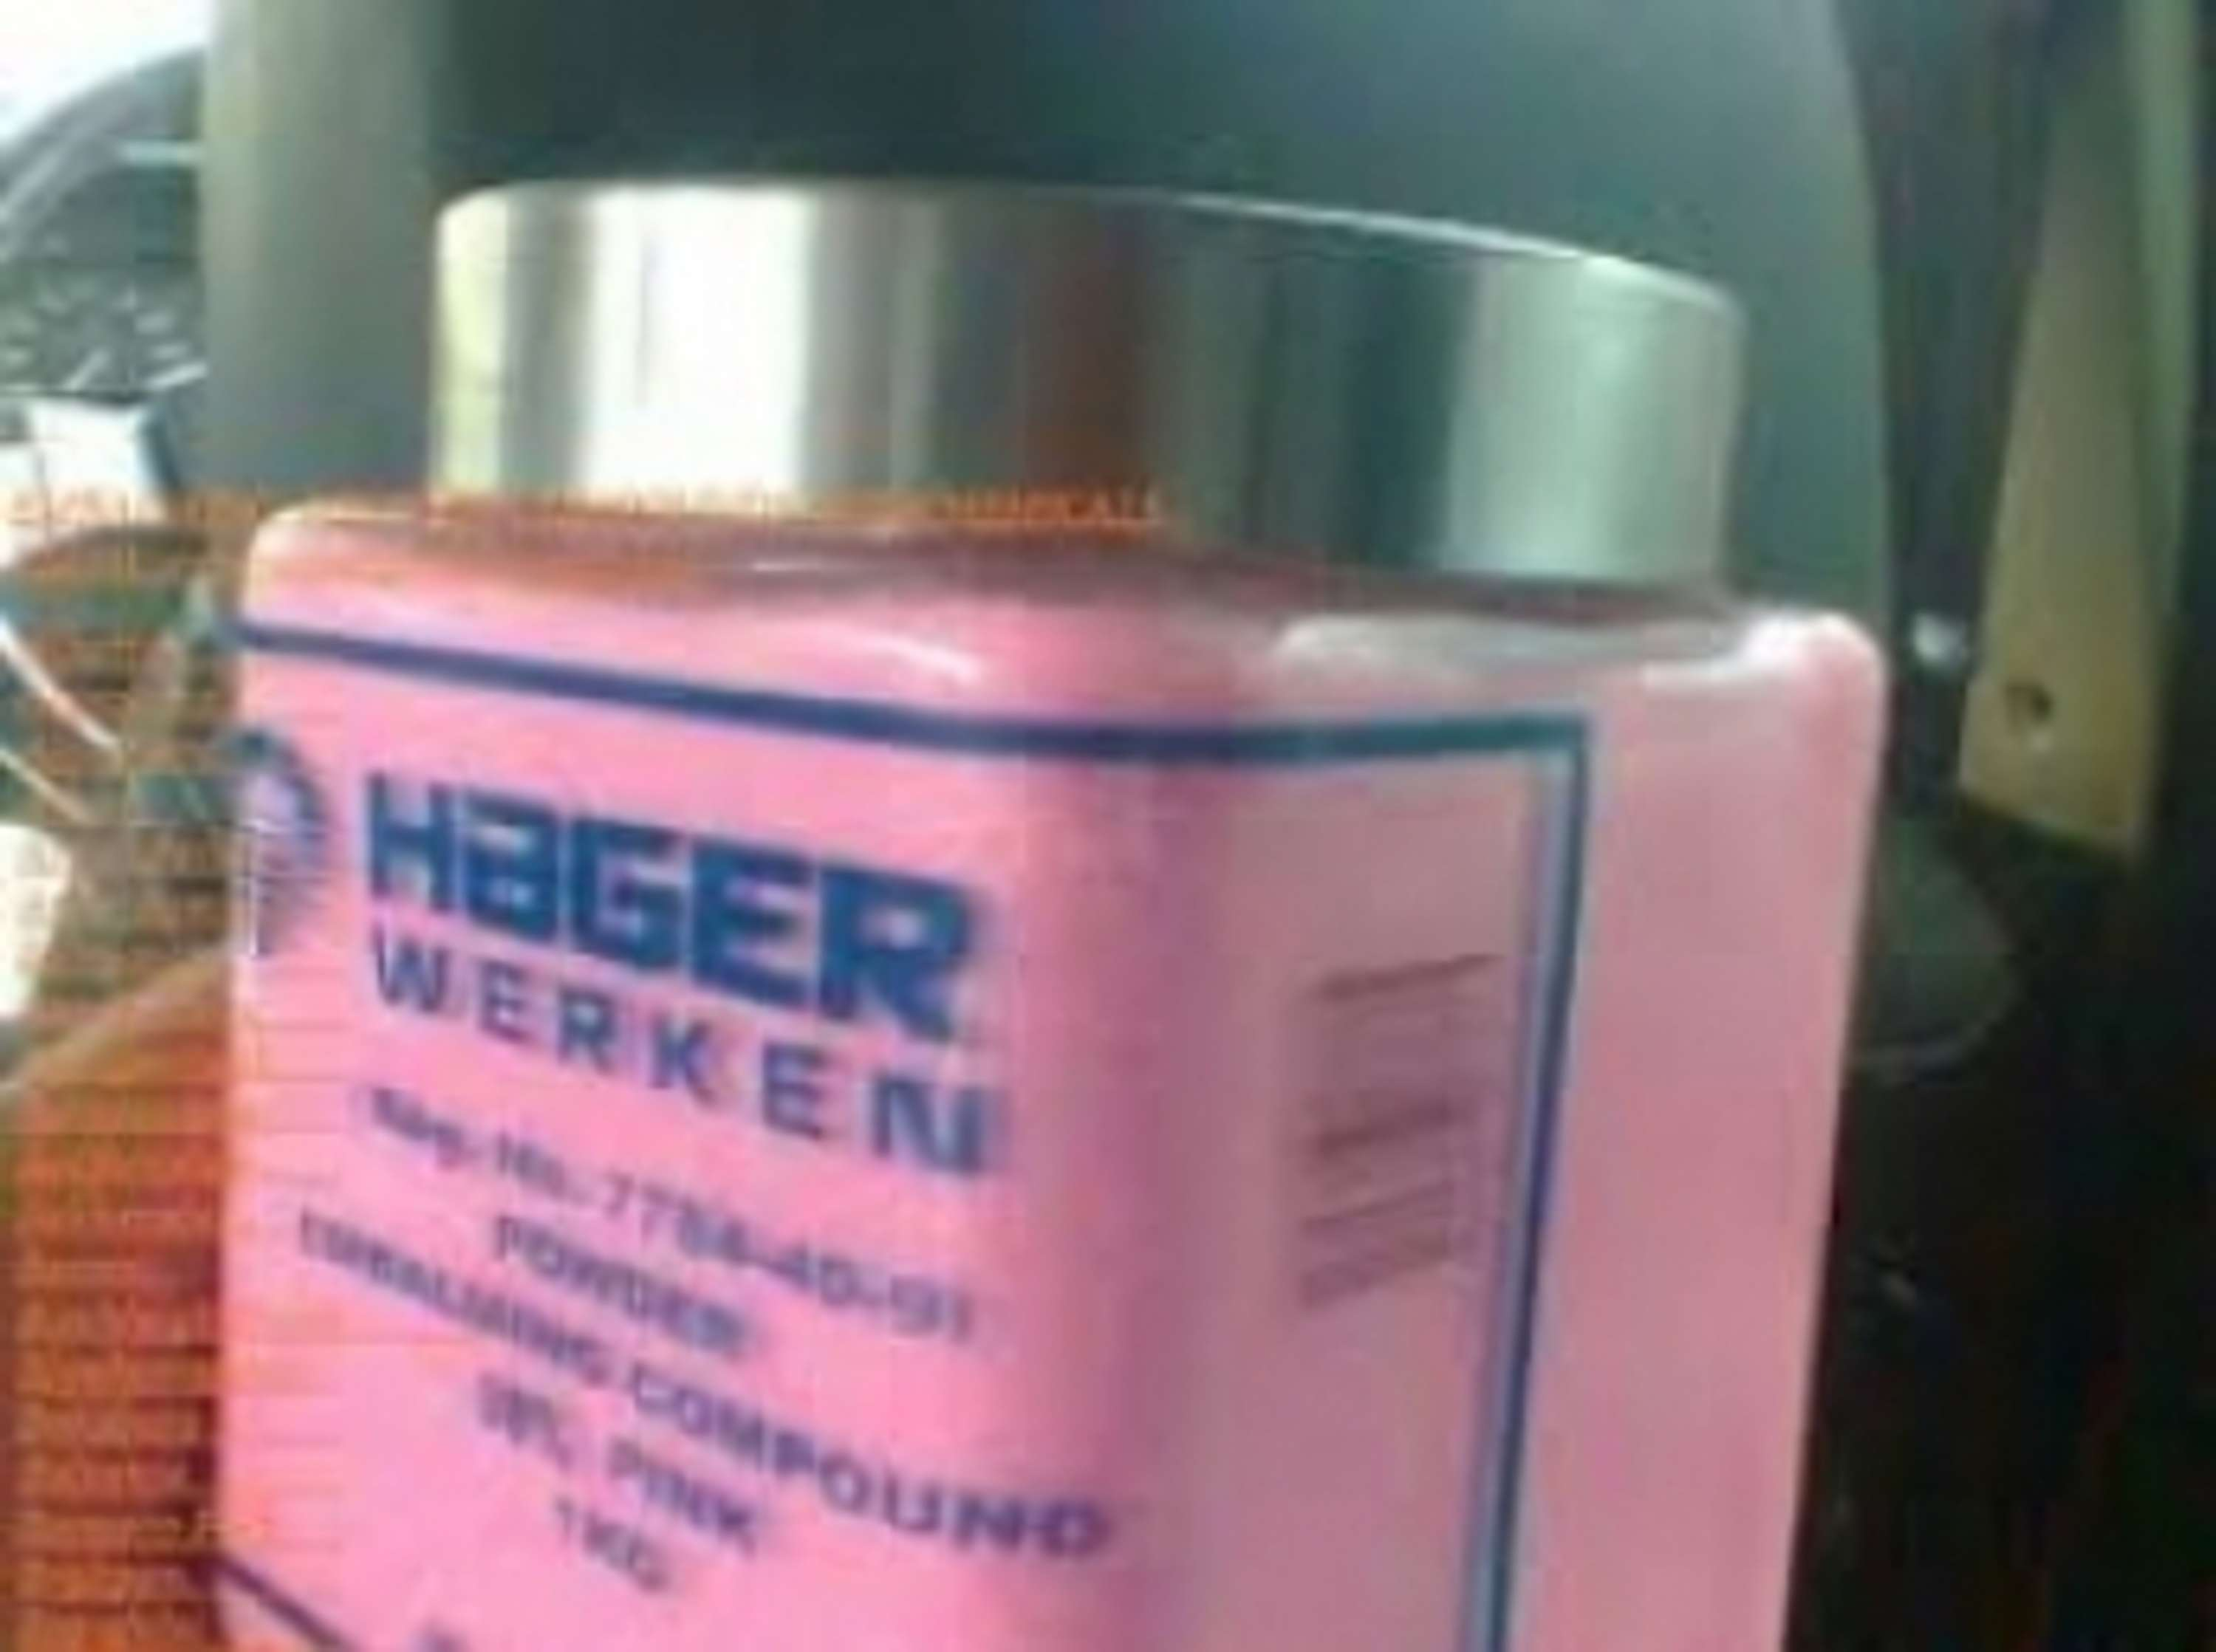 Pretoria Best suppliers of Hager Werken Embalming Compound powder